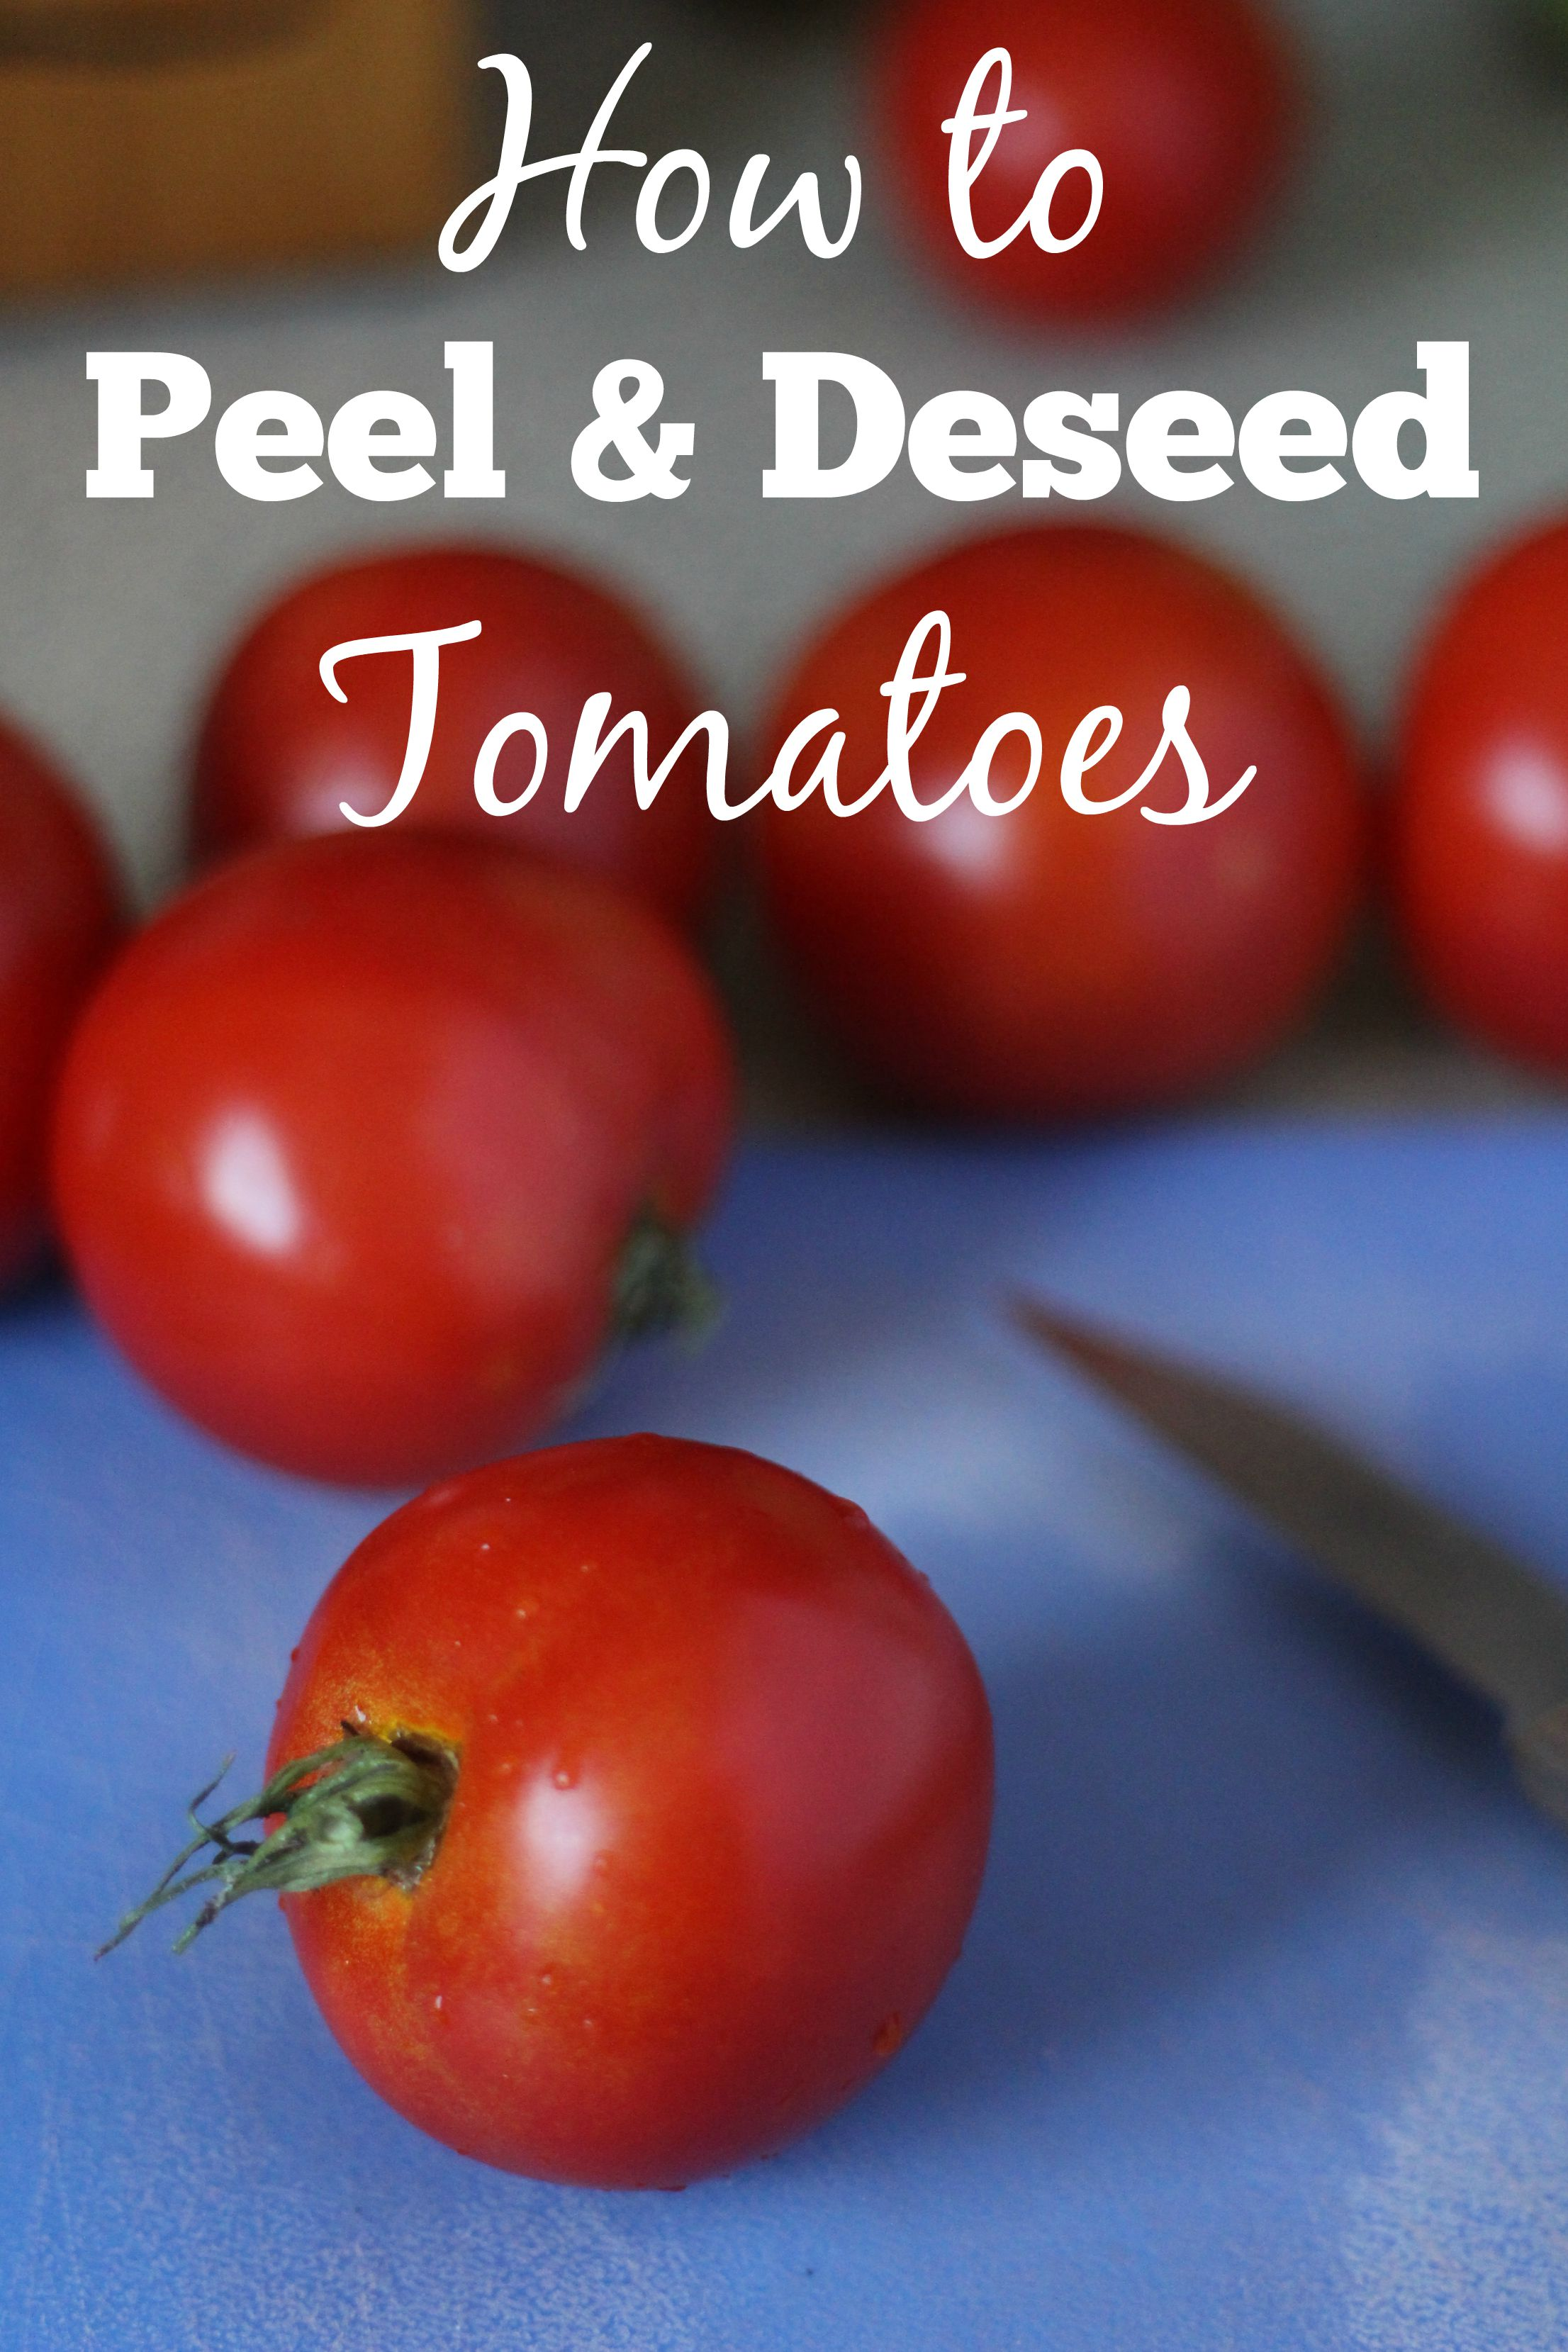 How to Peel and Deseed Tomatoes